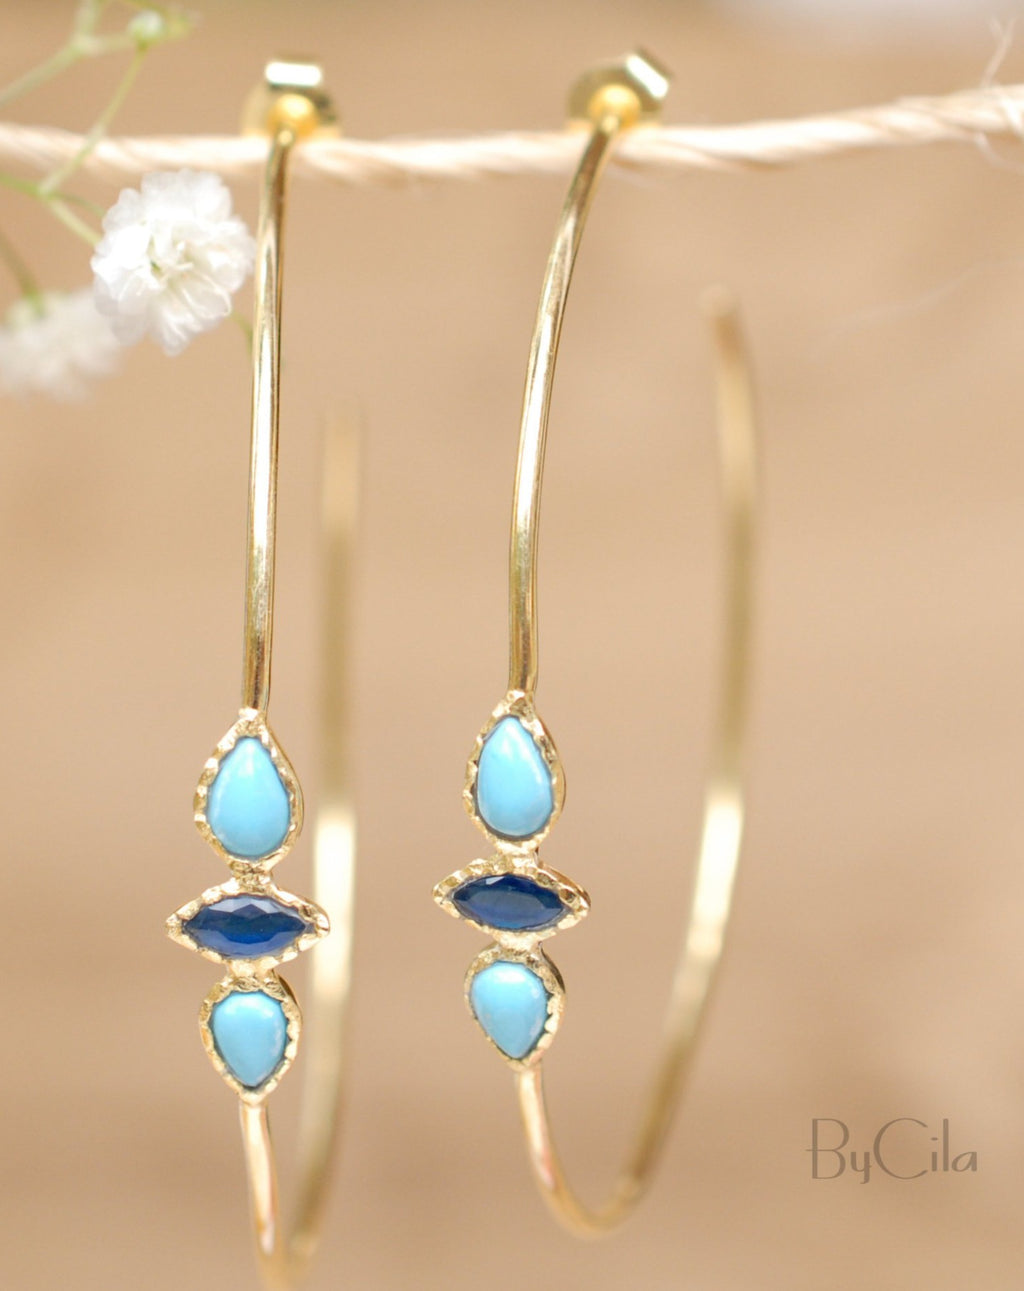 Yeda Hoop Earrings * Turquoise & Sapphire * Gold Plated 18k or Silver Plated * BJE018A